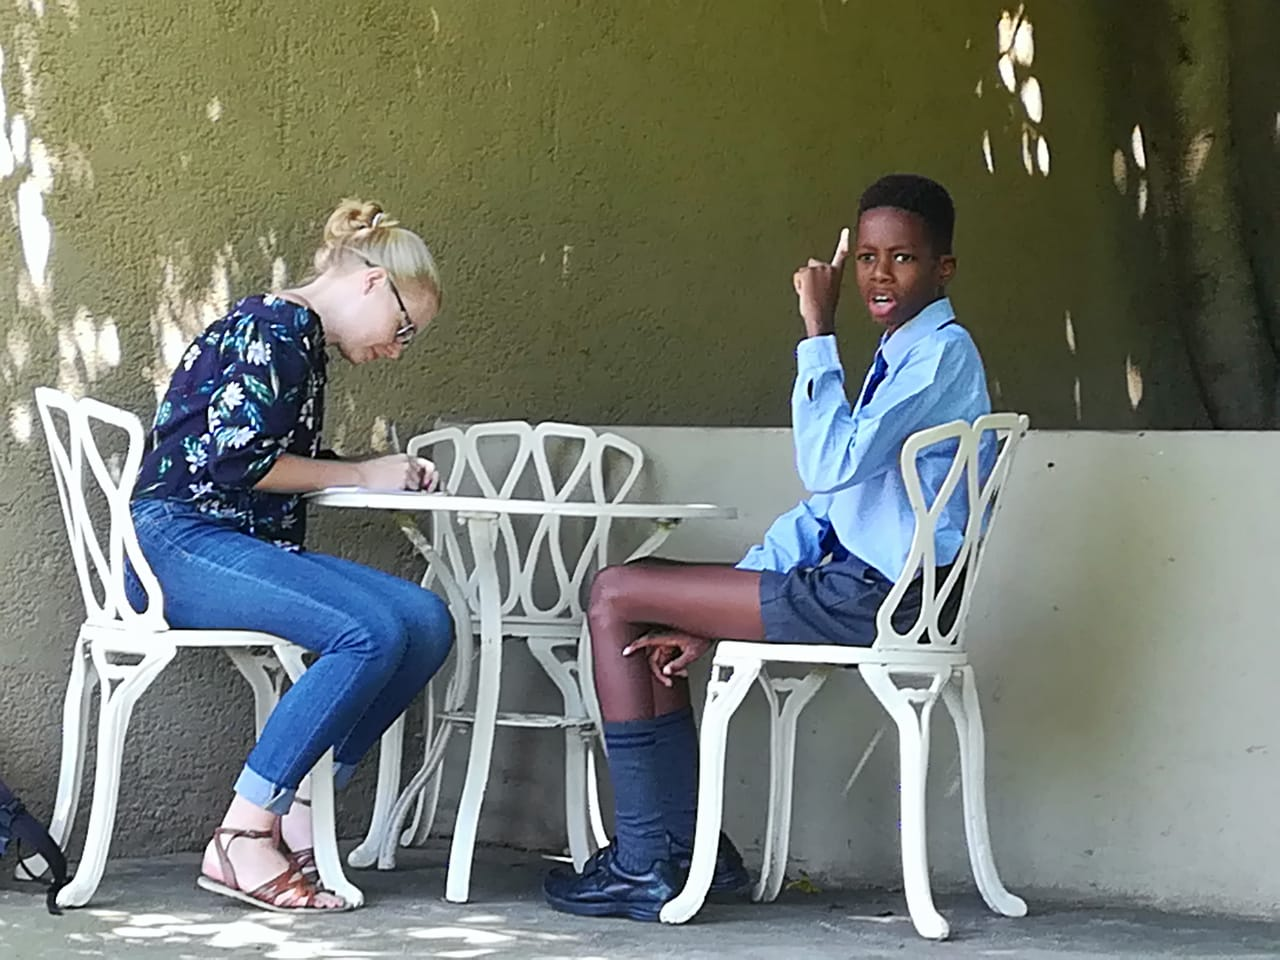 Above: Olufemi Oyeka being interviewed by Rosebank Killarney Gazette's Sarah Koning.